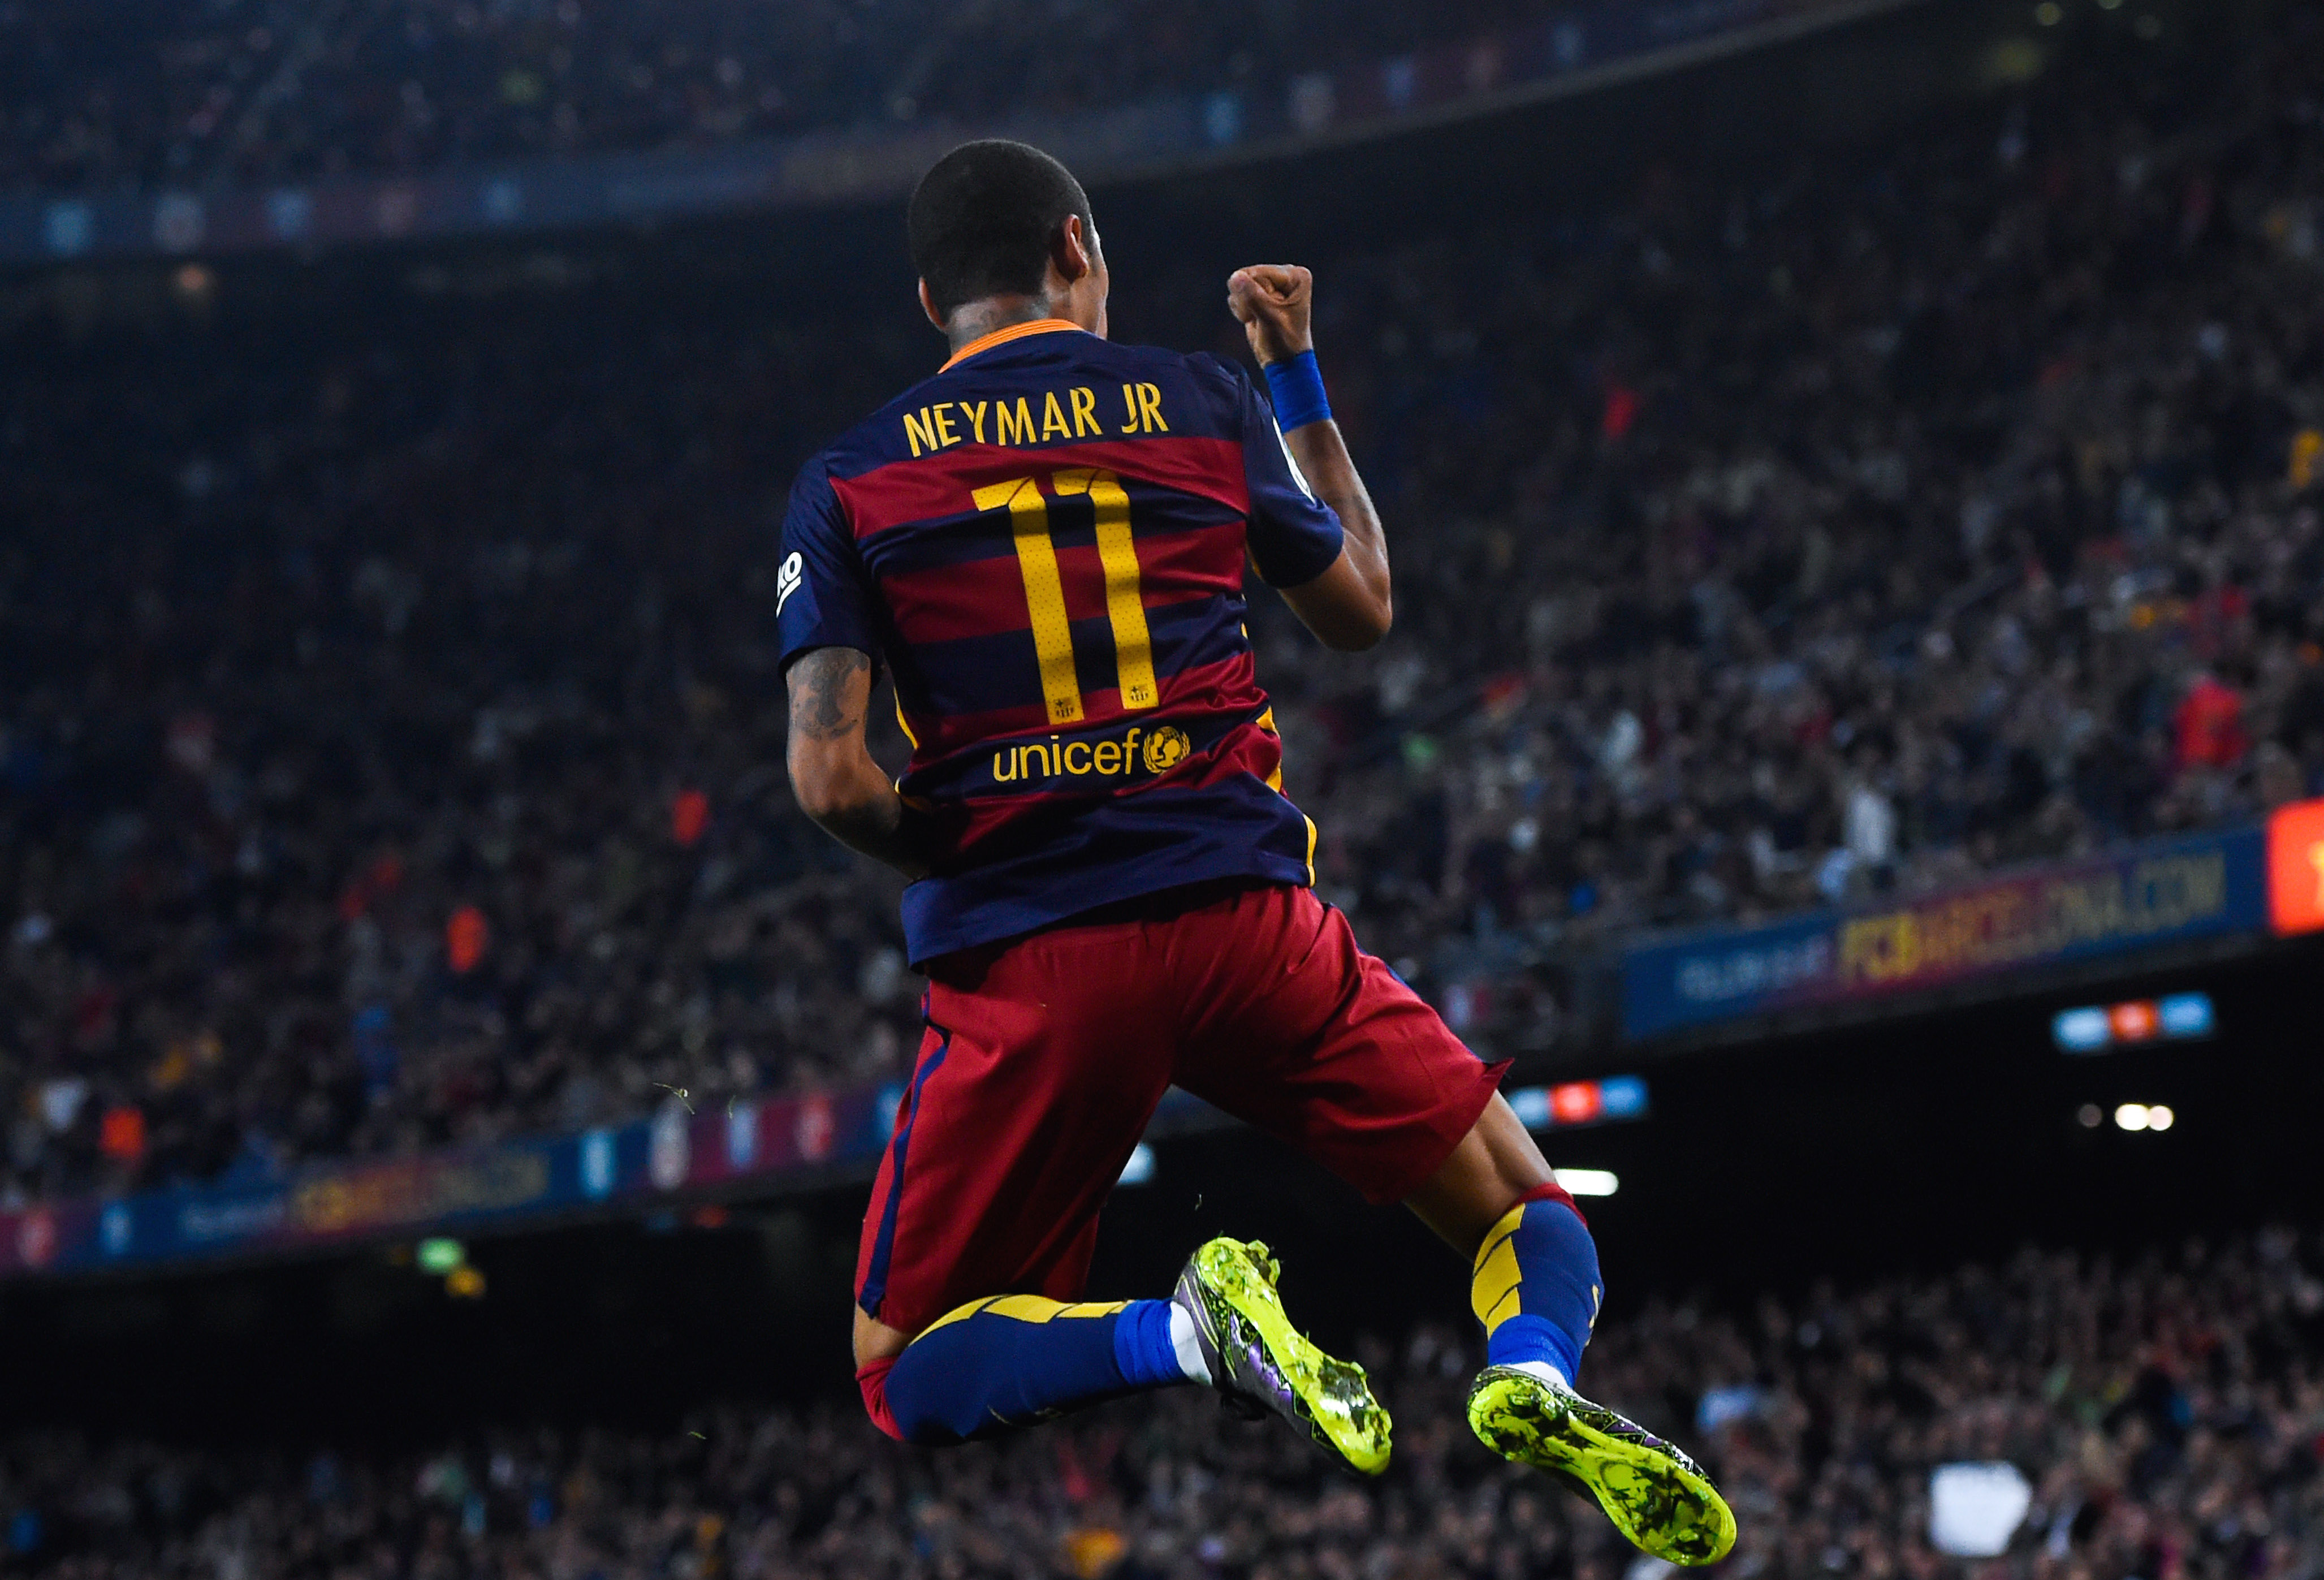 No, Neymar Isn't Going to Leave Barcelona…Probably